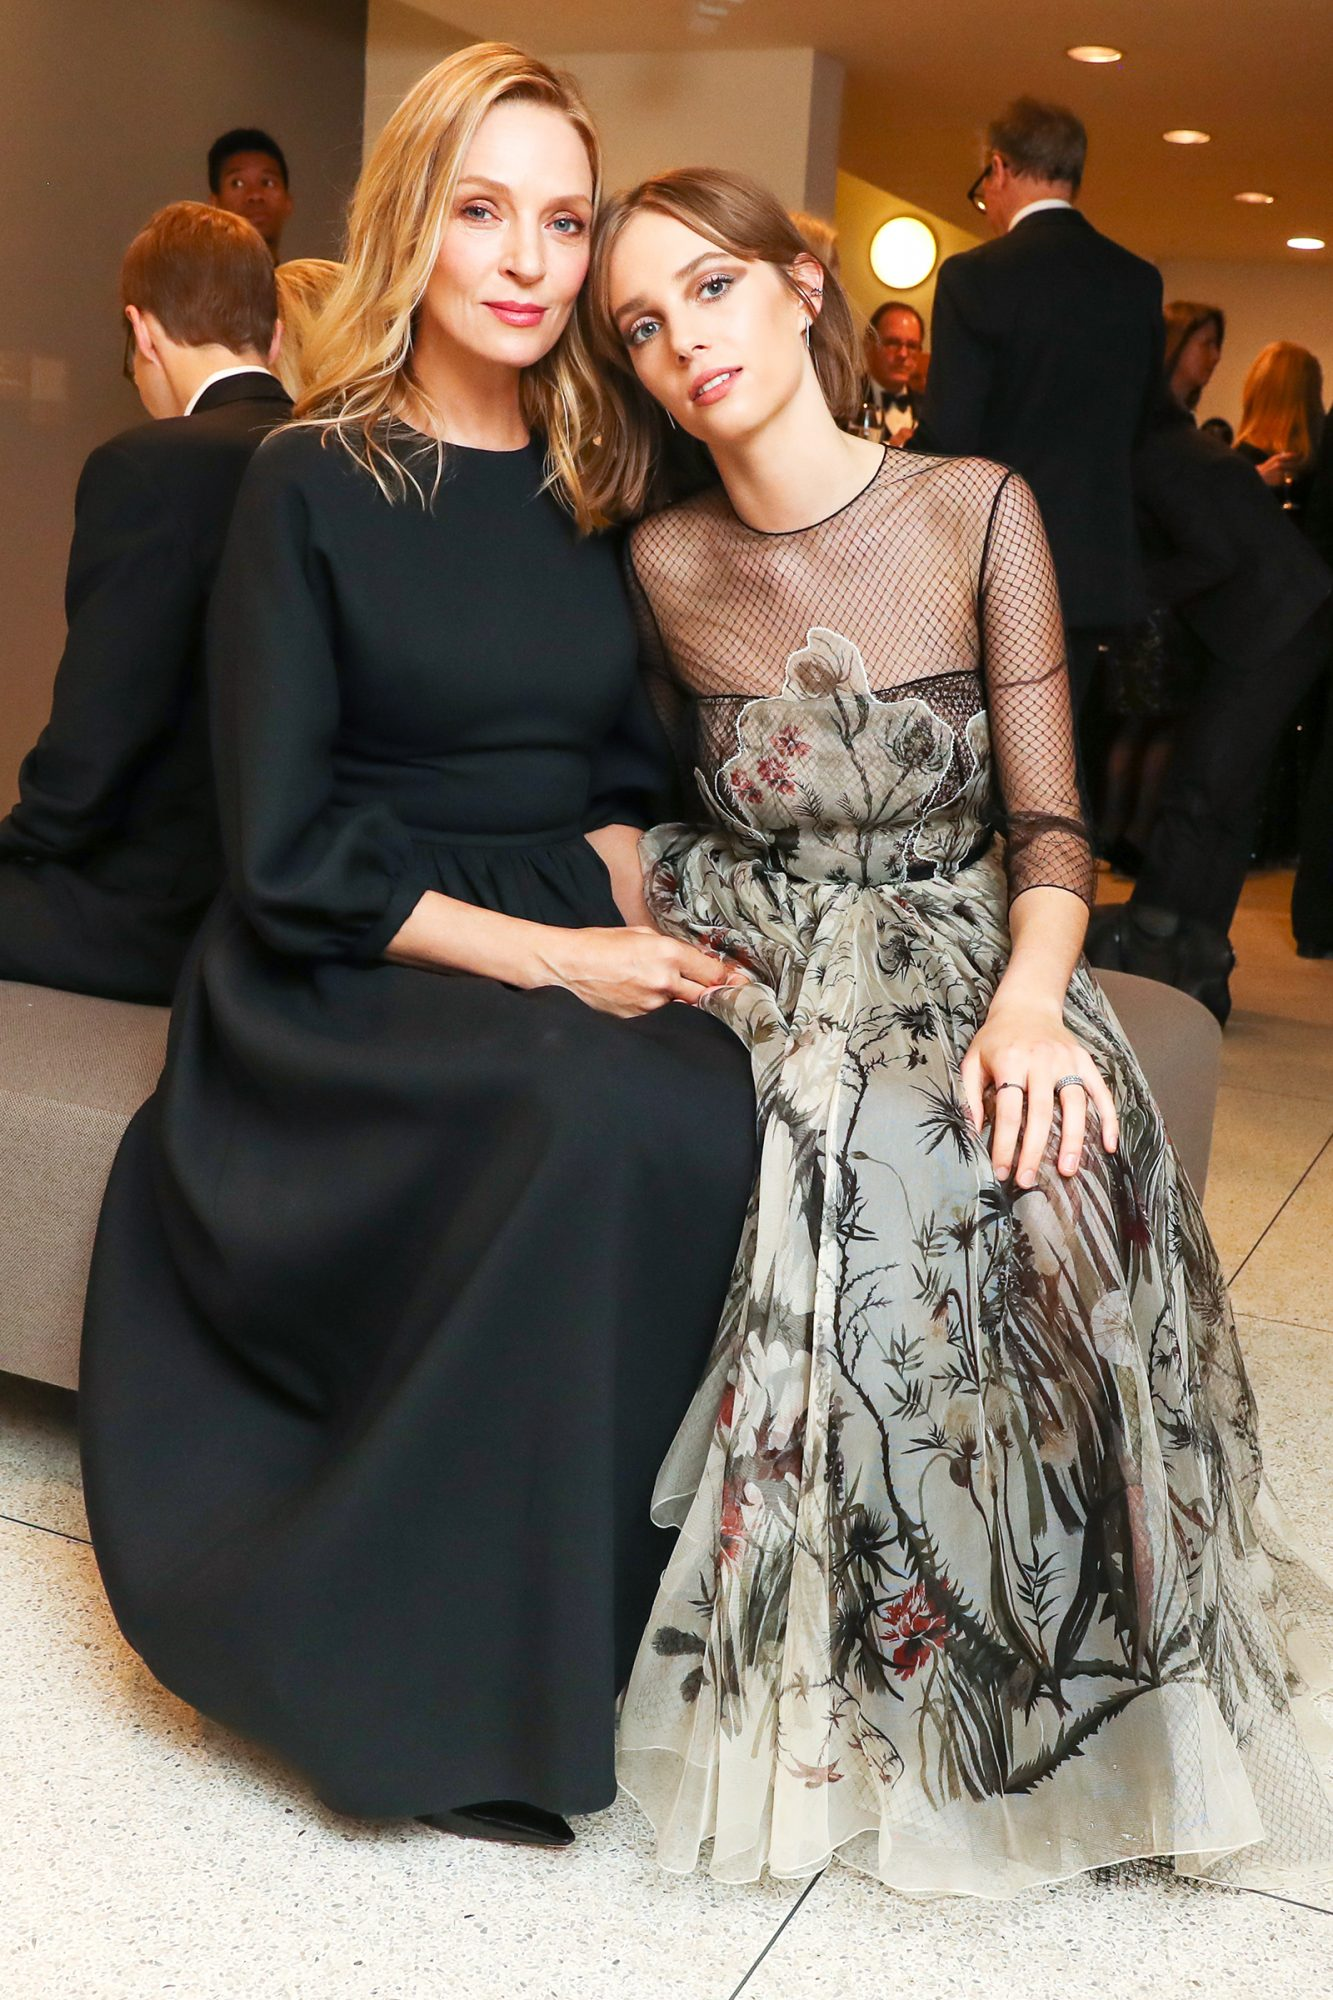 Uma Thurman and Maya Hawke attend the 2019 GUGGENHEIM INTERNATIONAL GALA: MADE POSSIBLE BY DIOR at the Solomon R. Guggenheim Museum, NY on November 14, 2019